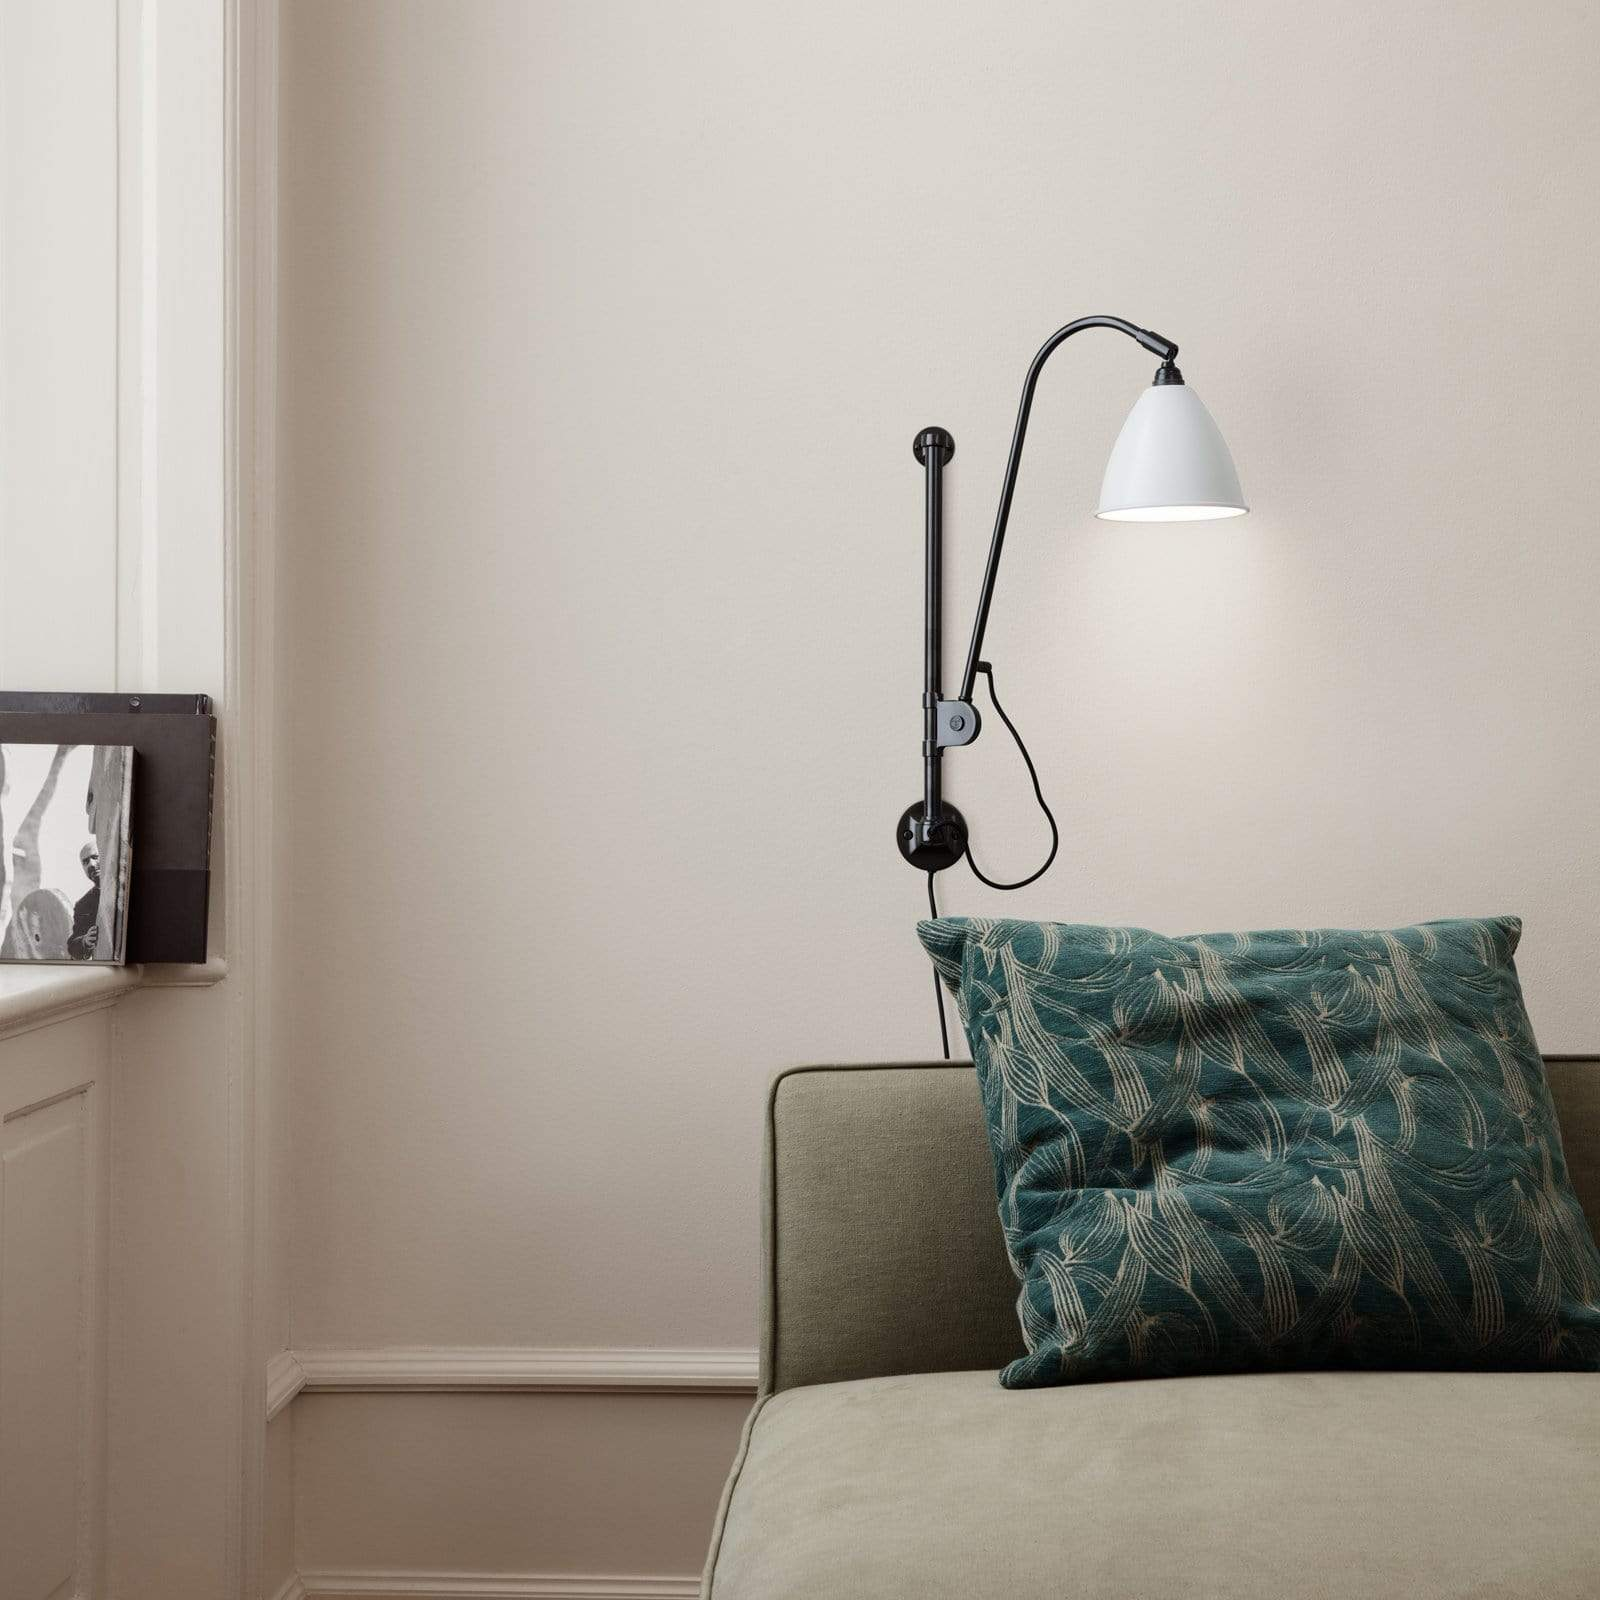 Gubi Lighting BL5 Wall Lamp